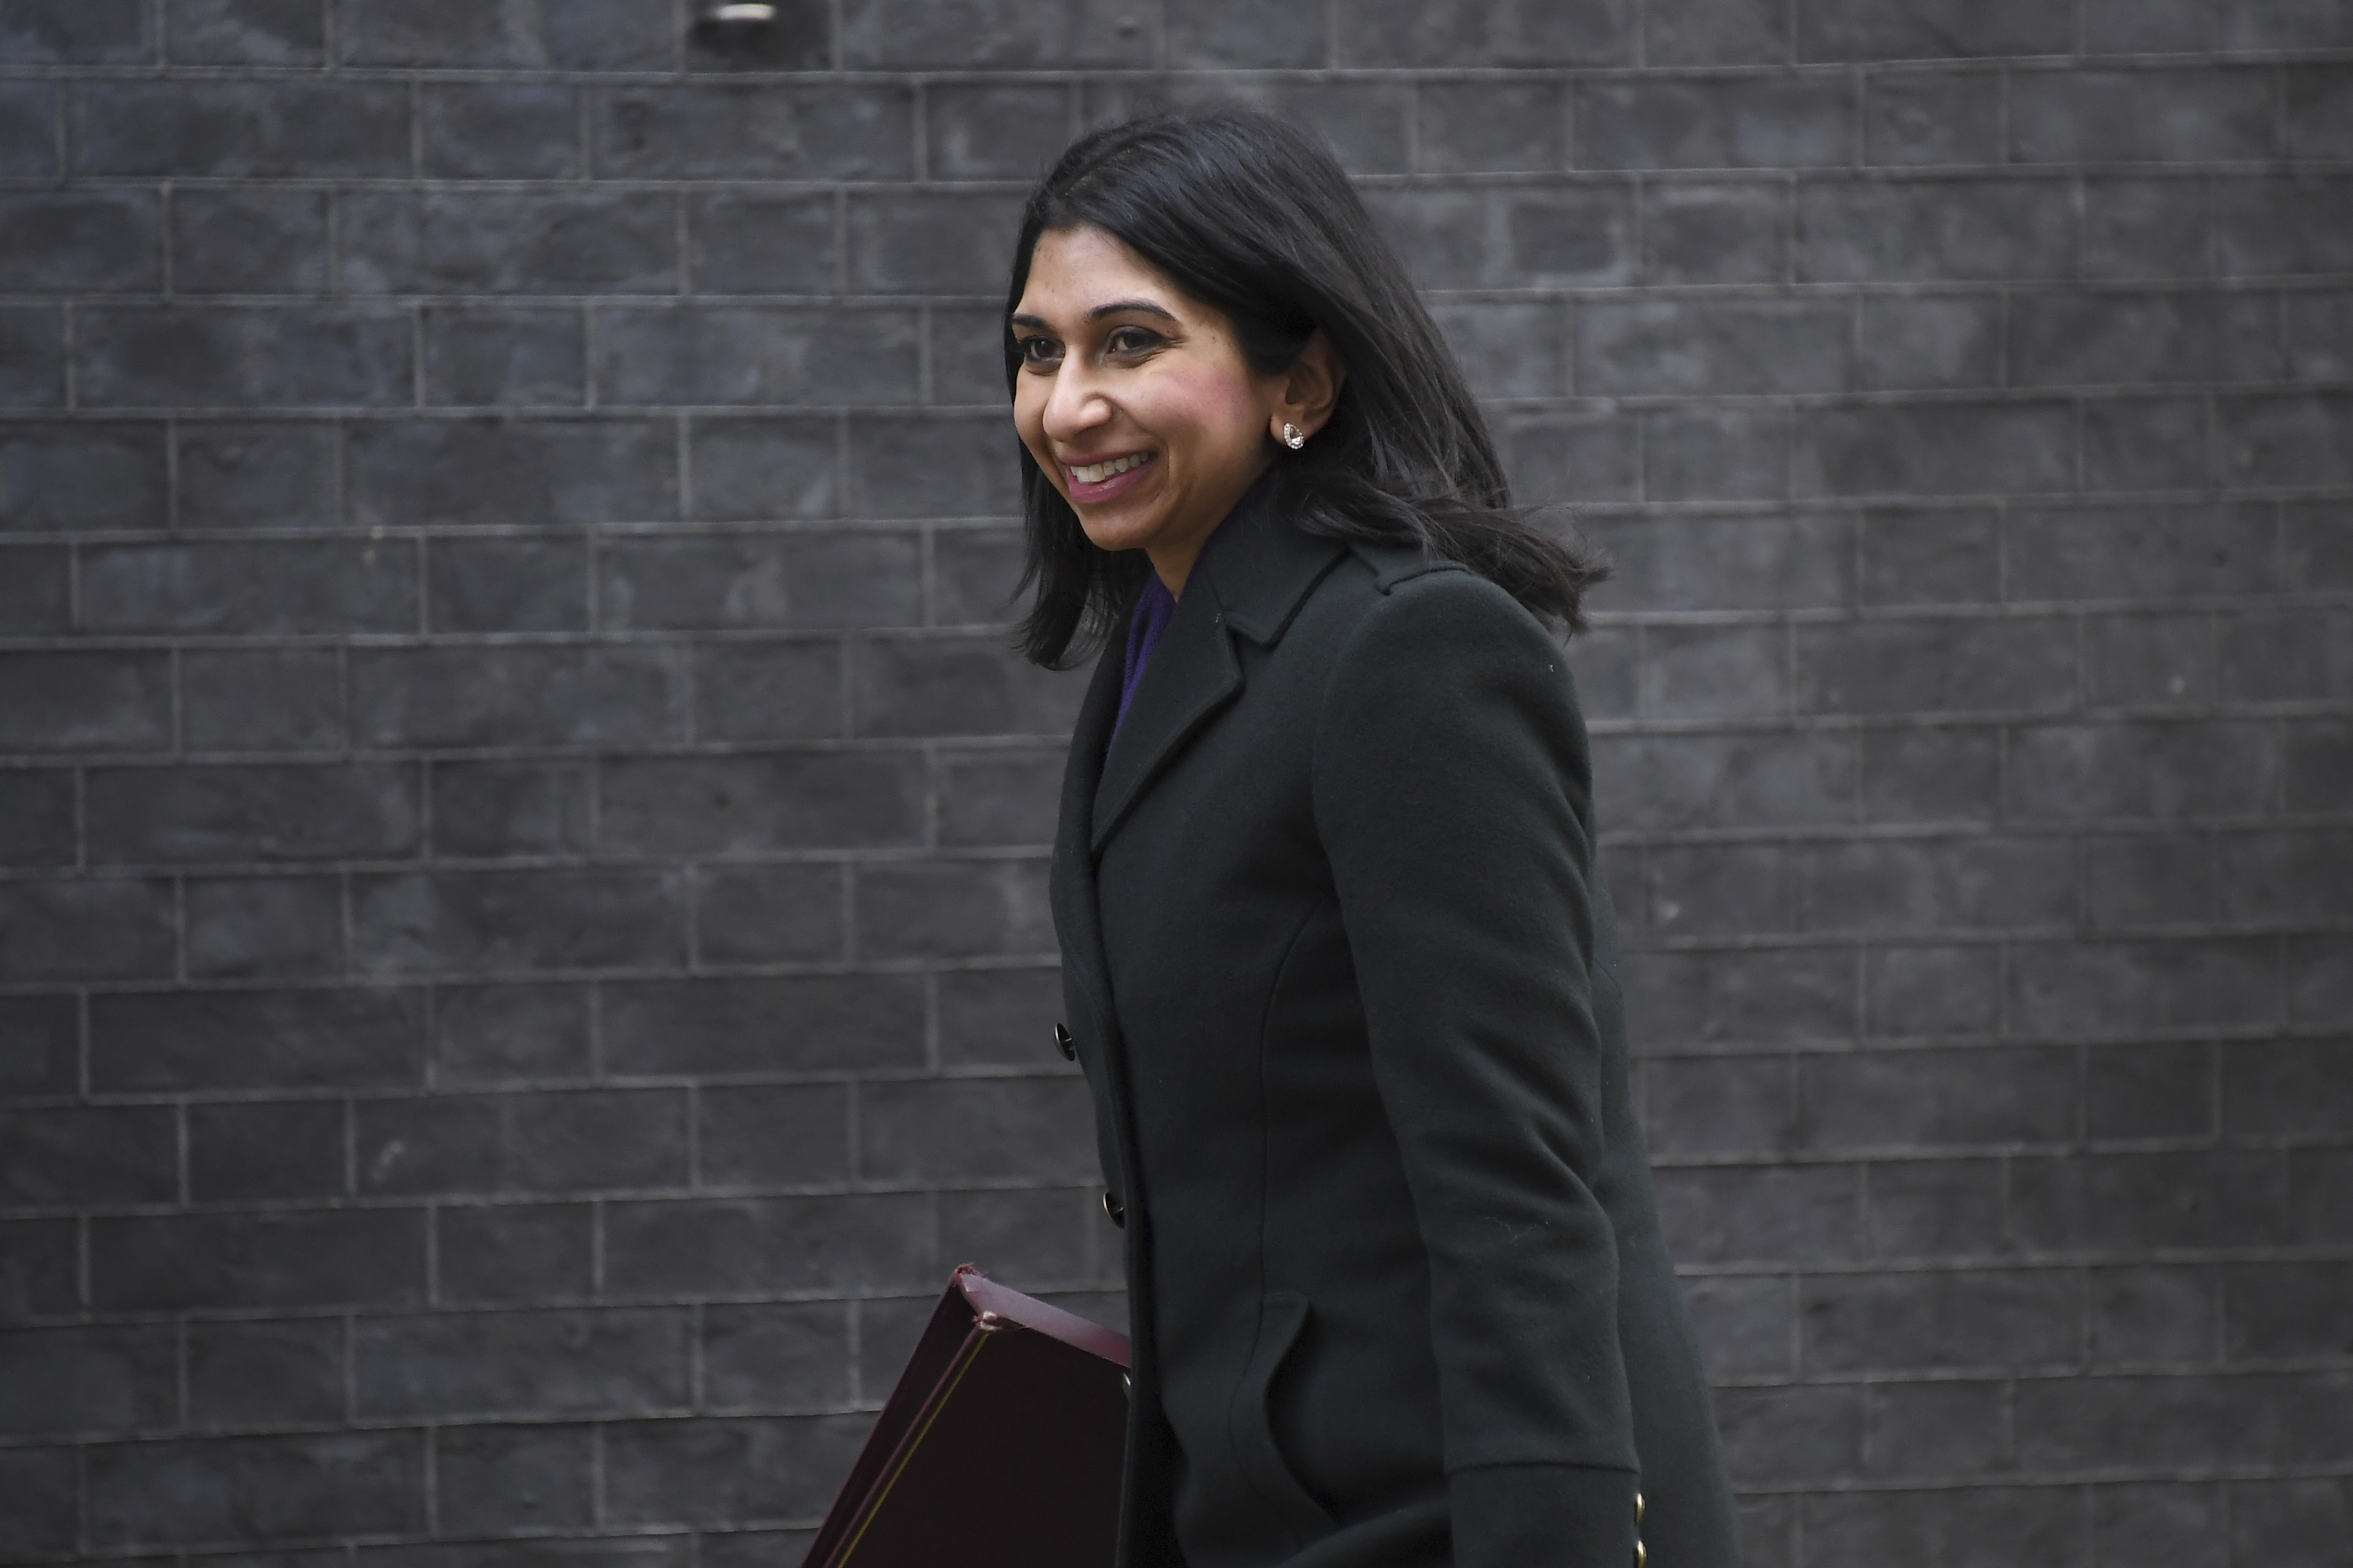 British lawmaker Suella Braverman, the Attorney General arrives for a Cabinet meeting at 10 Downing Street, in London on Friday